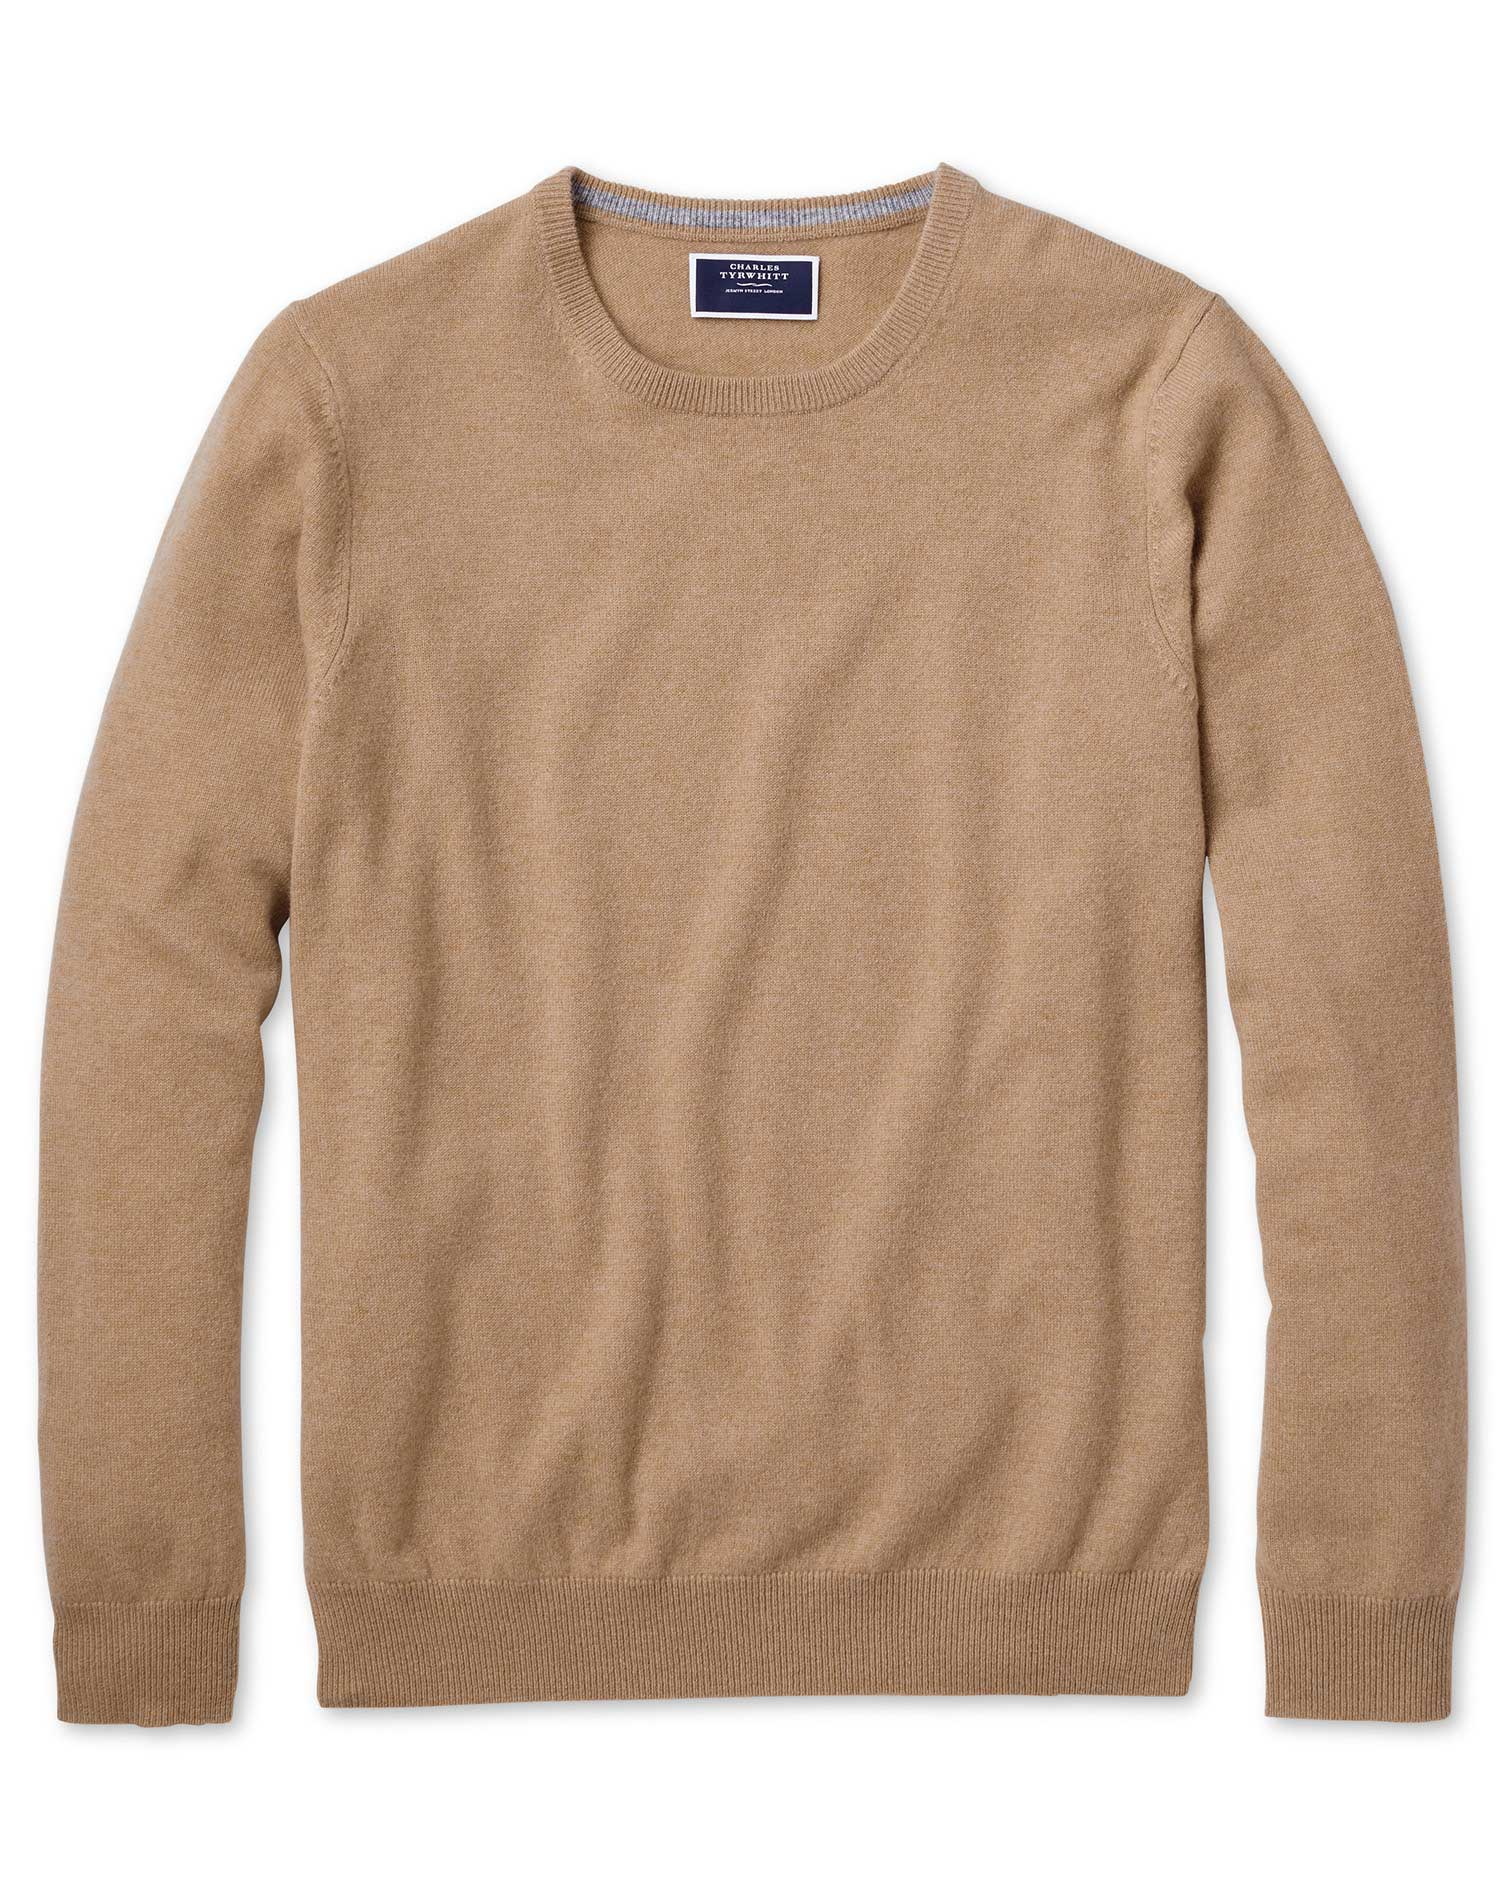 Tan Crew Neck Cashmere Jumper Size XS by Charles Tyrwhitt